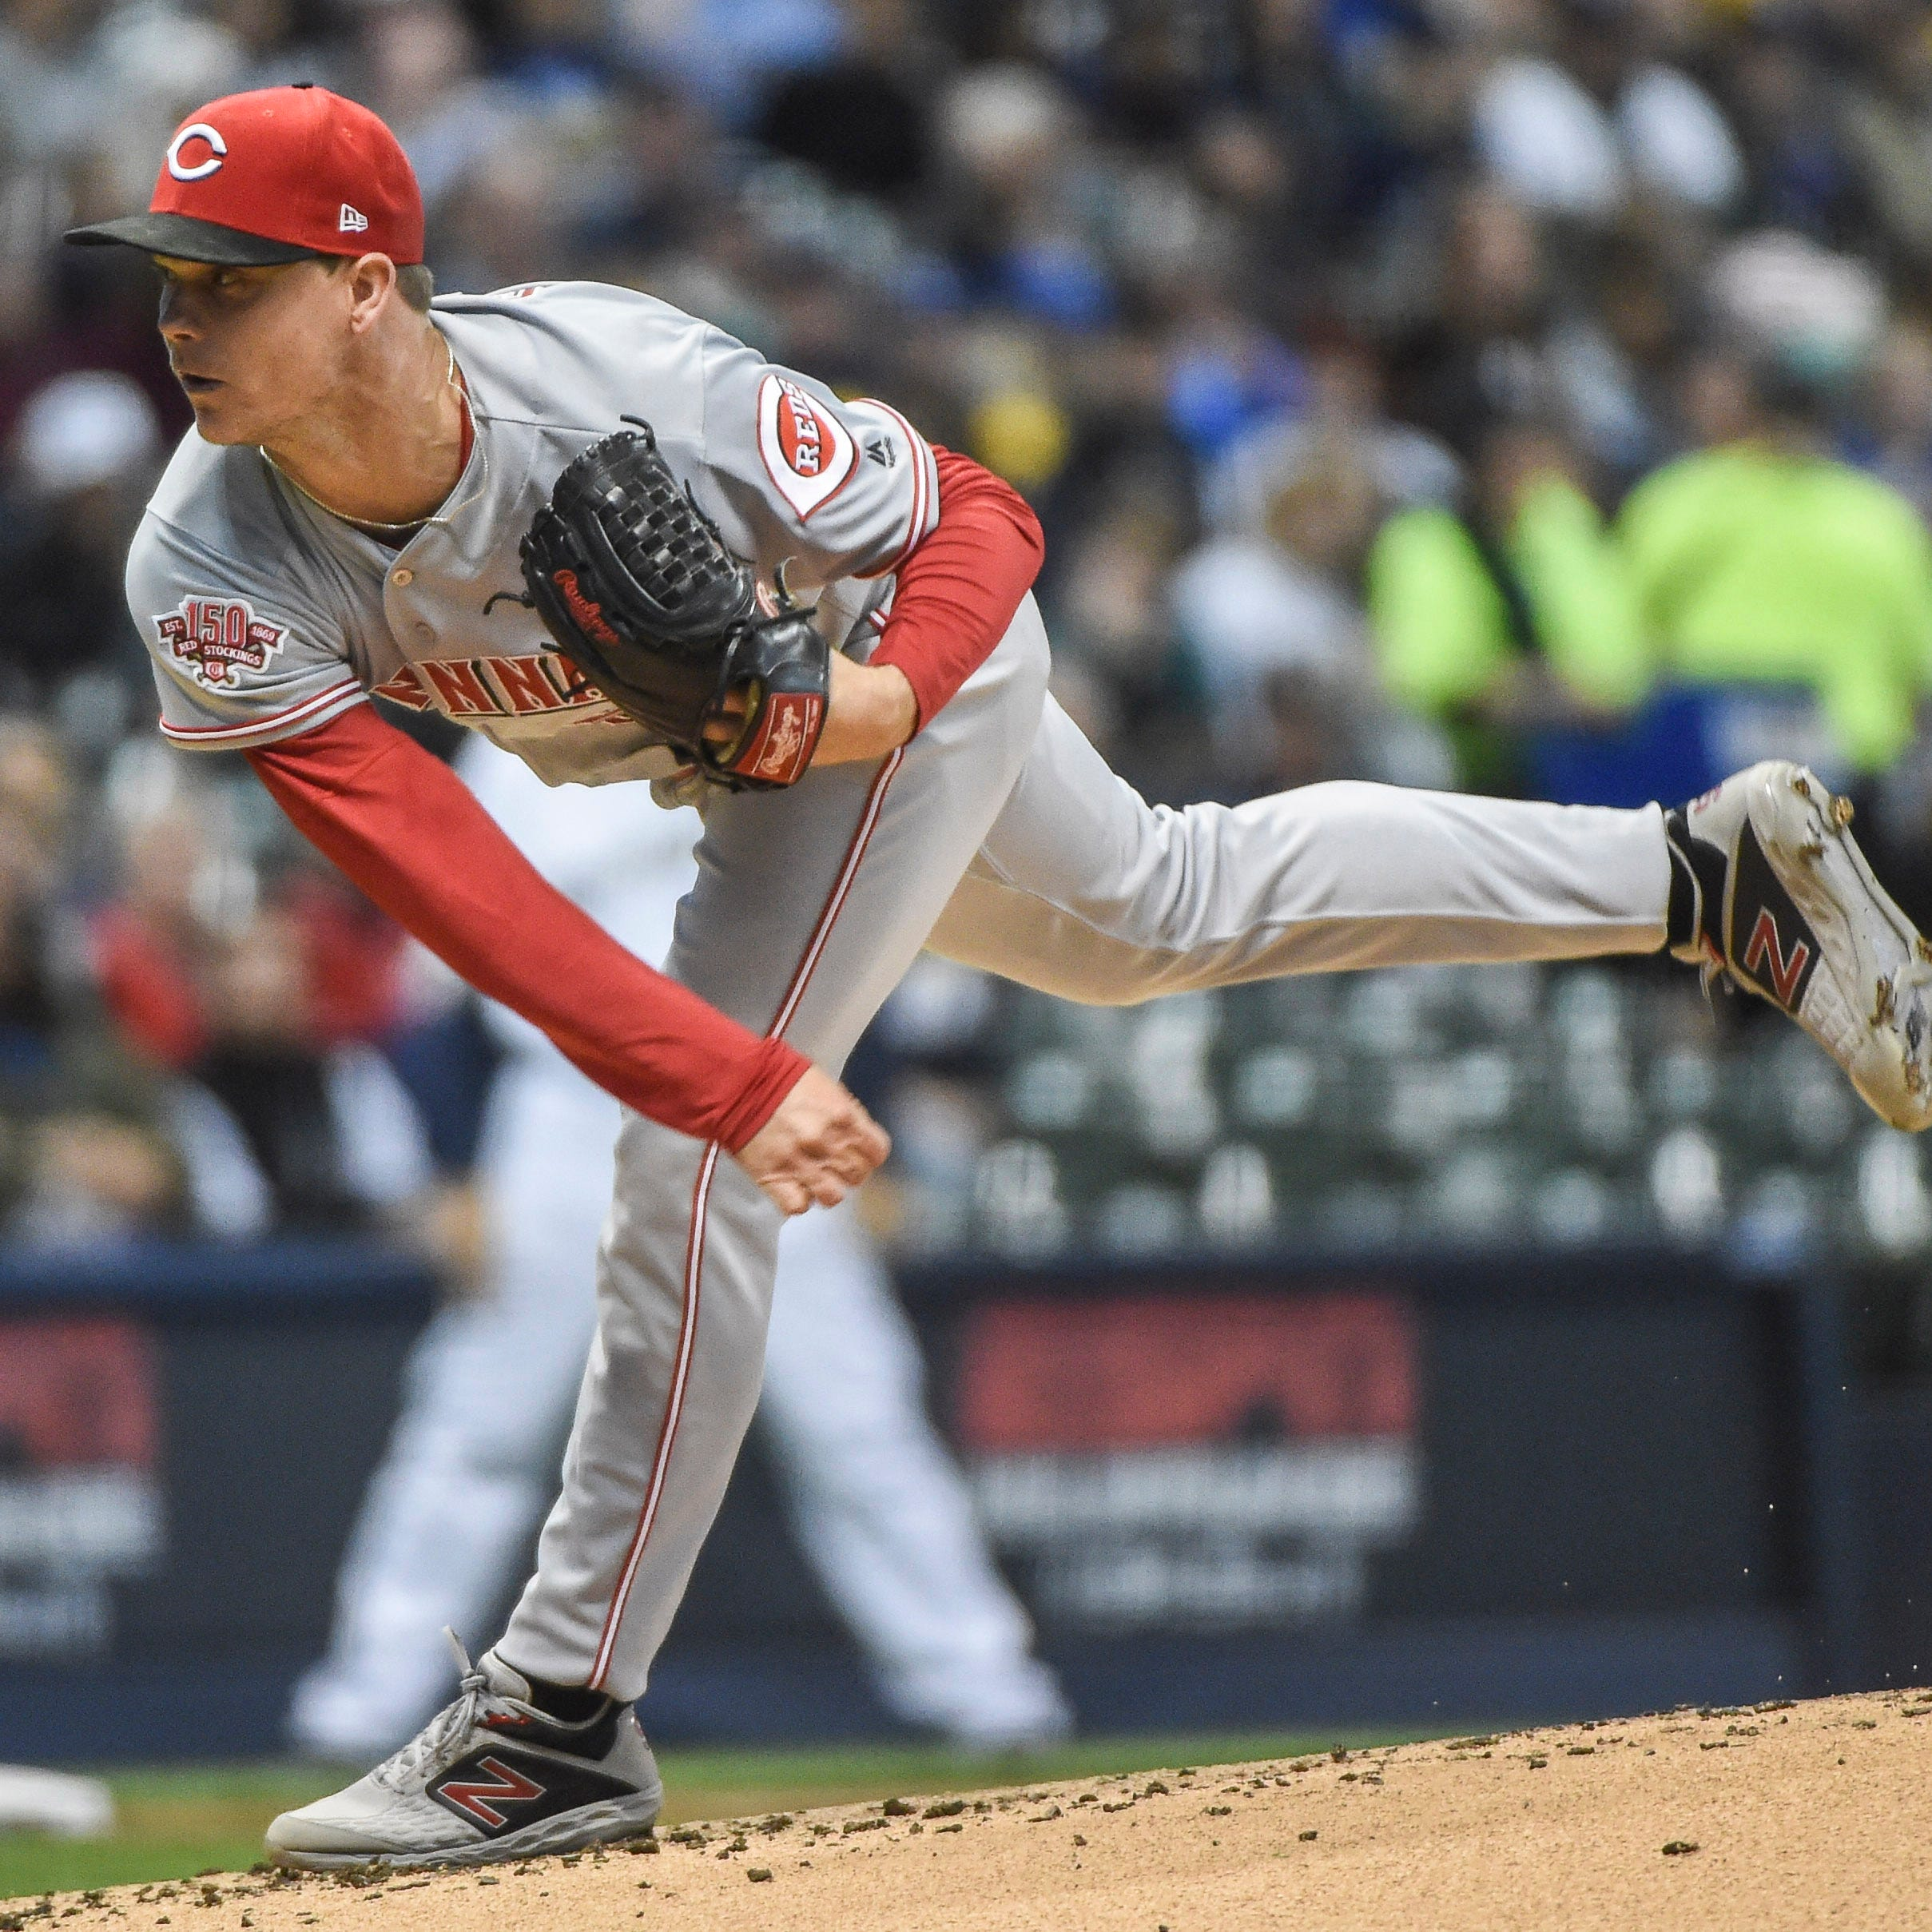 Cincinnati Reds make it three straight vs. NL Central with a 3-0 win over the Milwaukee Brewers